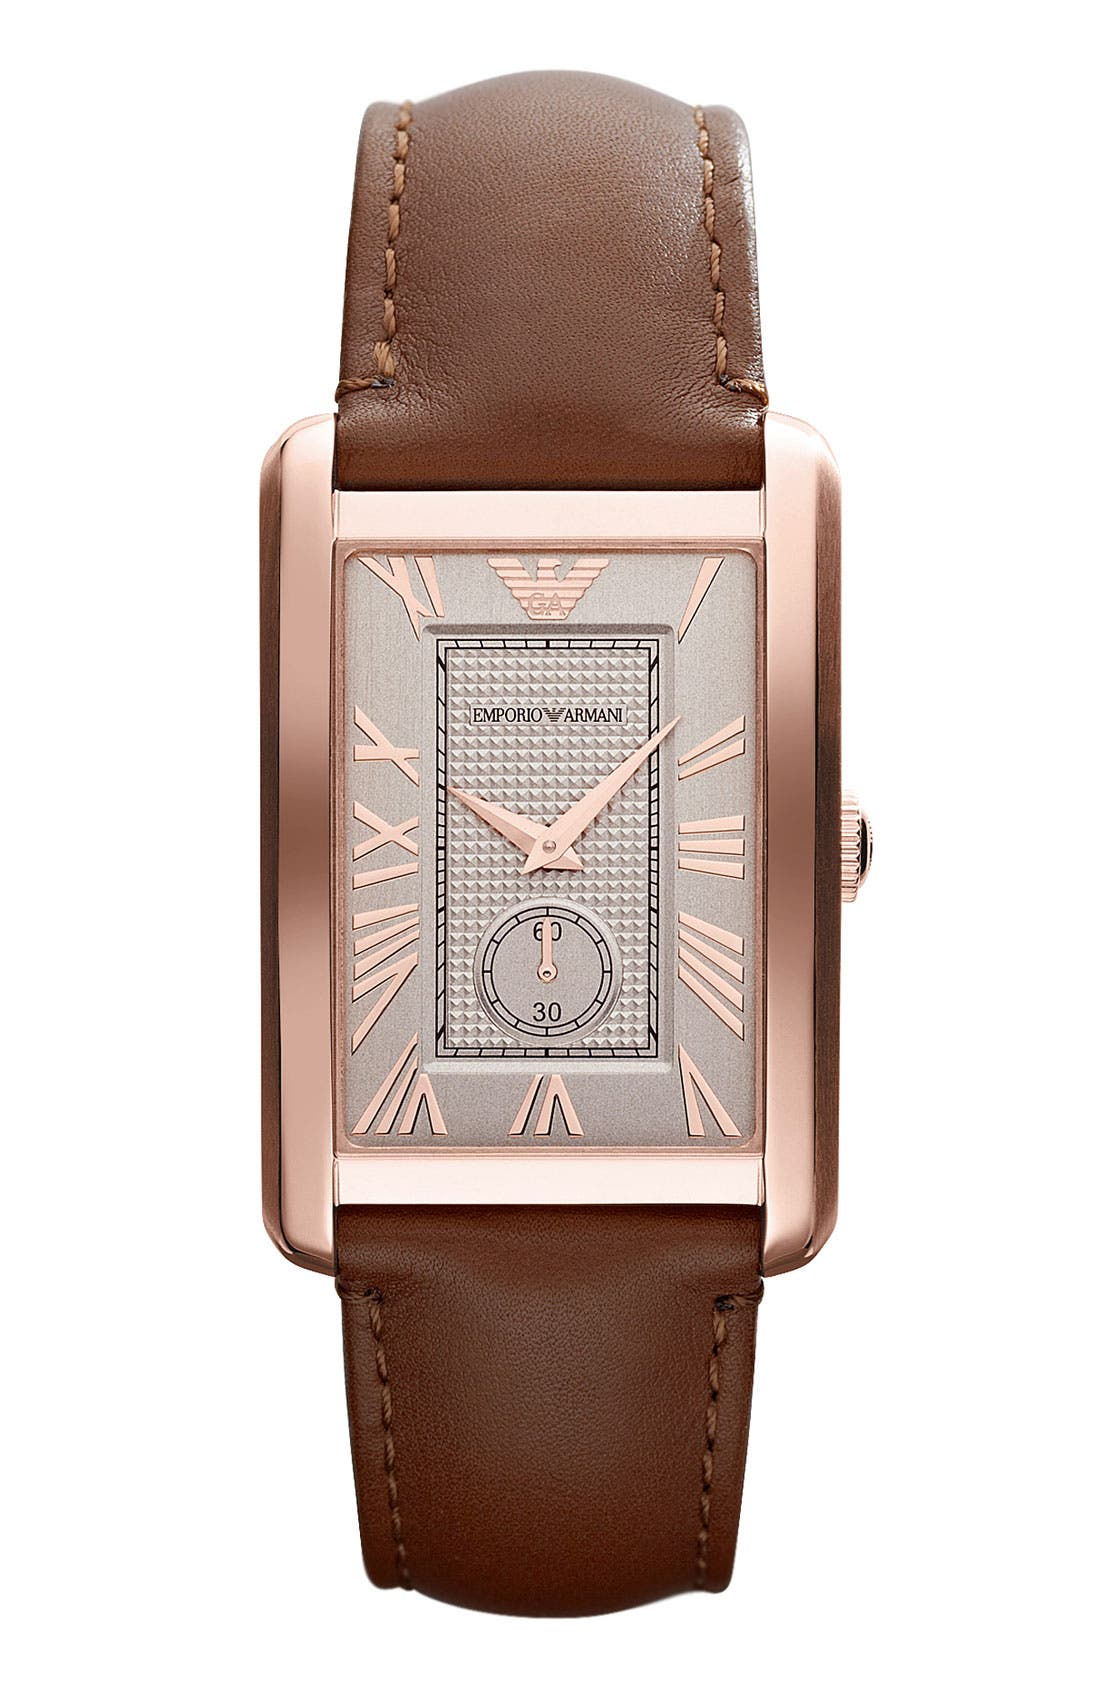 Alternate Image 1 Selected - Emporio Armani Rectangular Leather Strap Watch, 31mm x 39mm